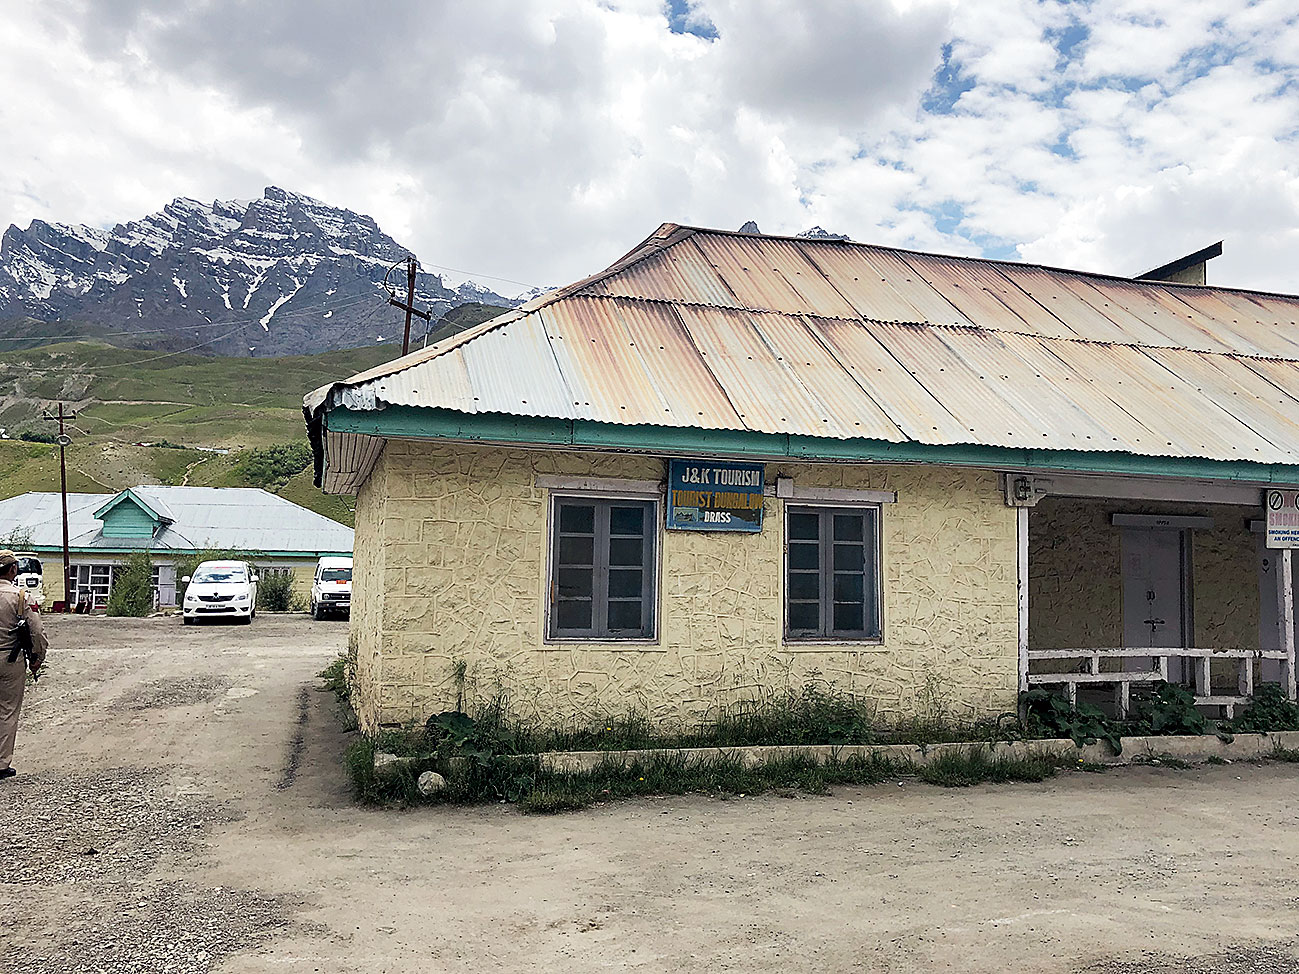 Drass tourist bungalow as it is today